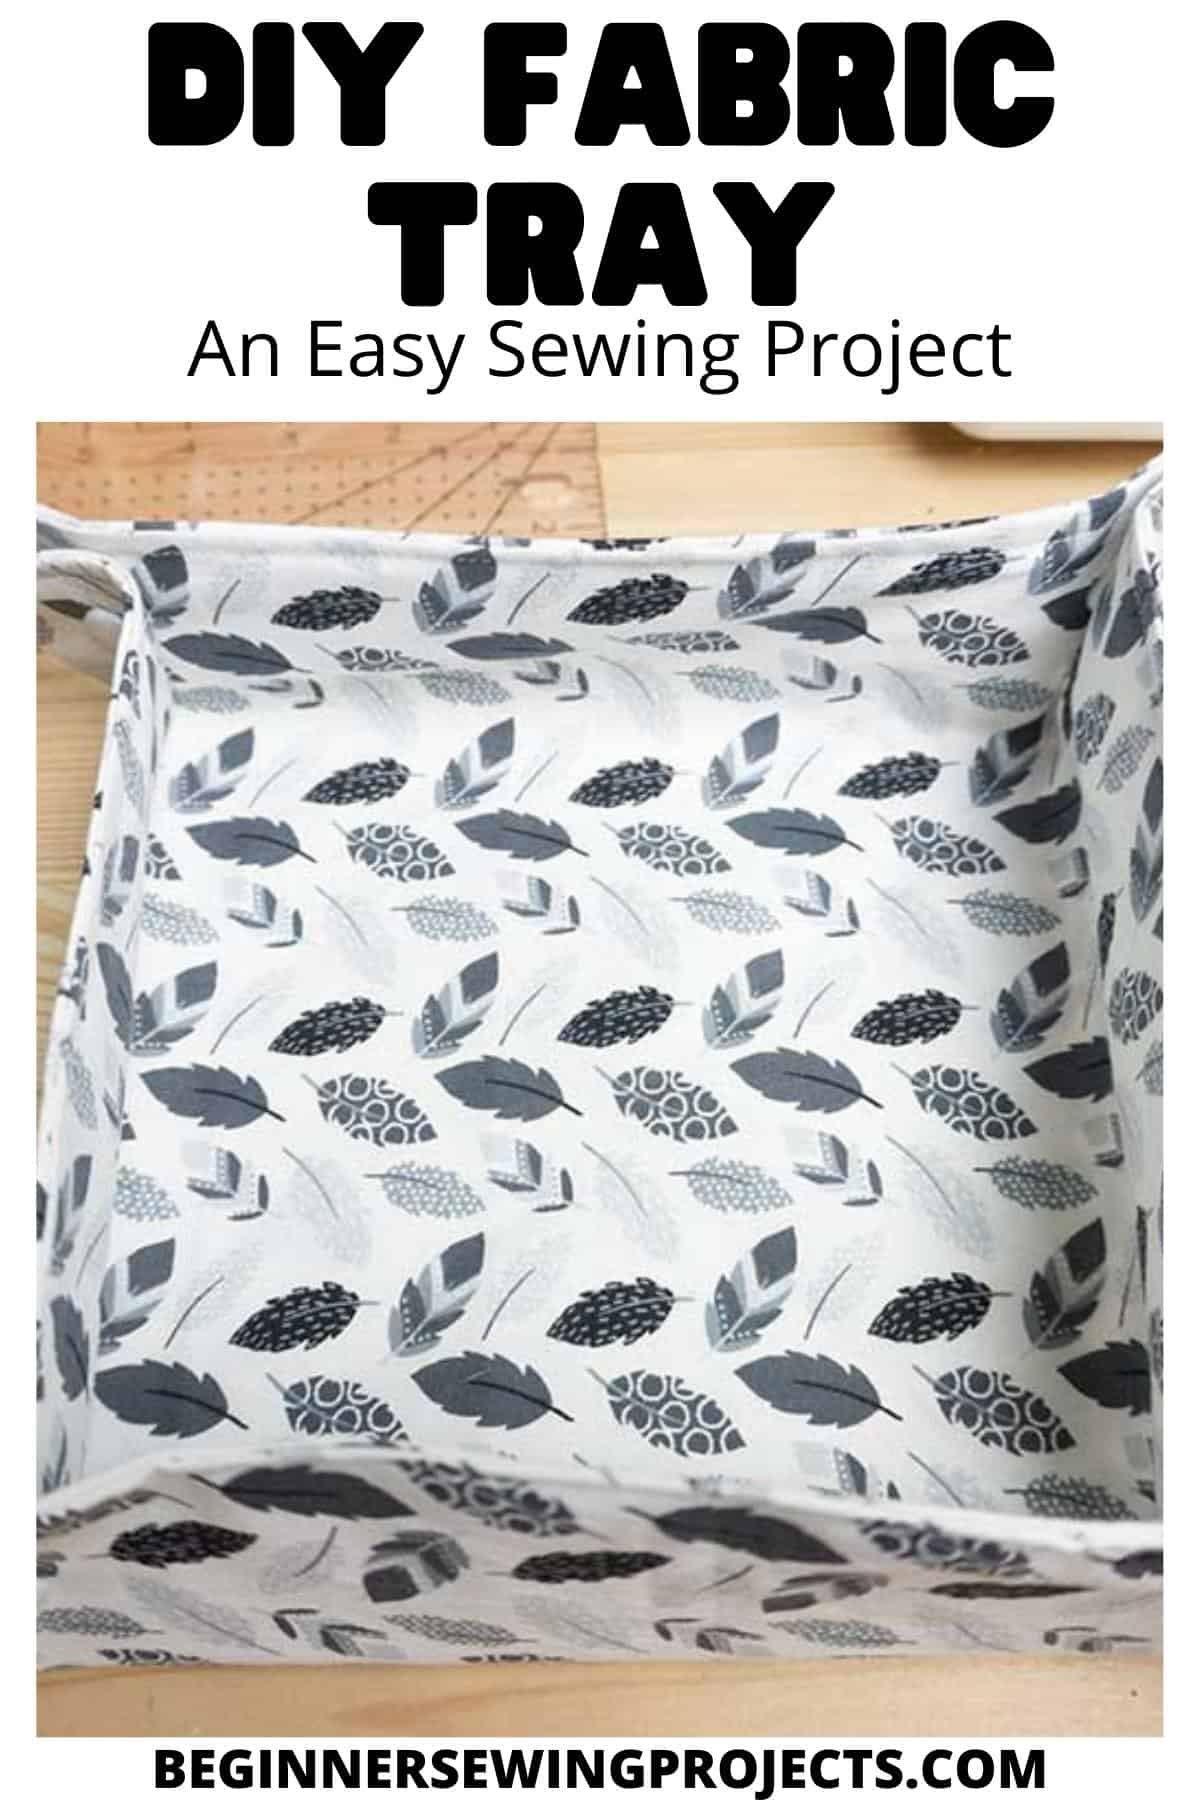 DIY Fabric Tray - An Easy Sewing Project